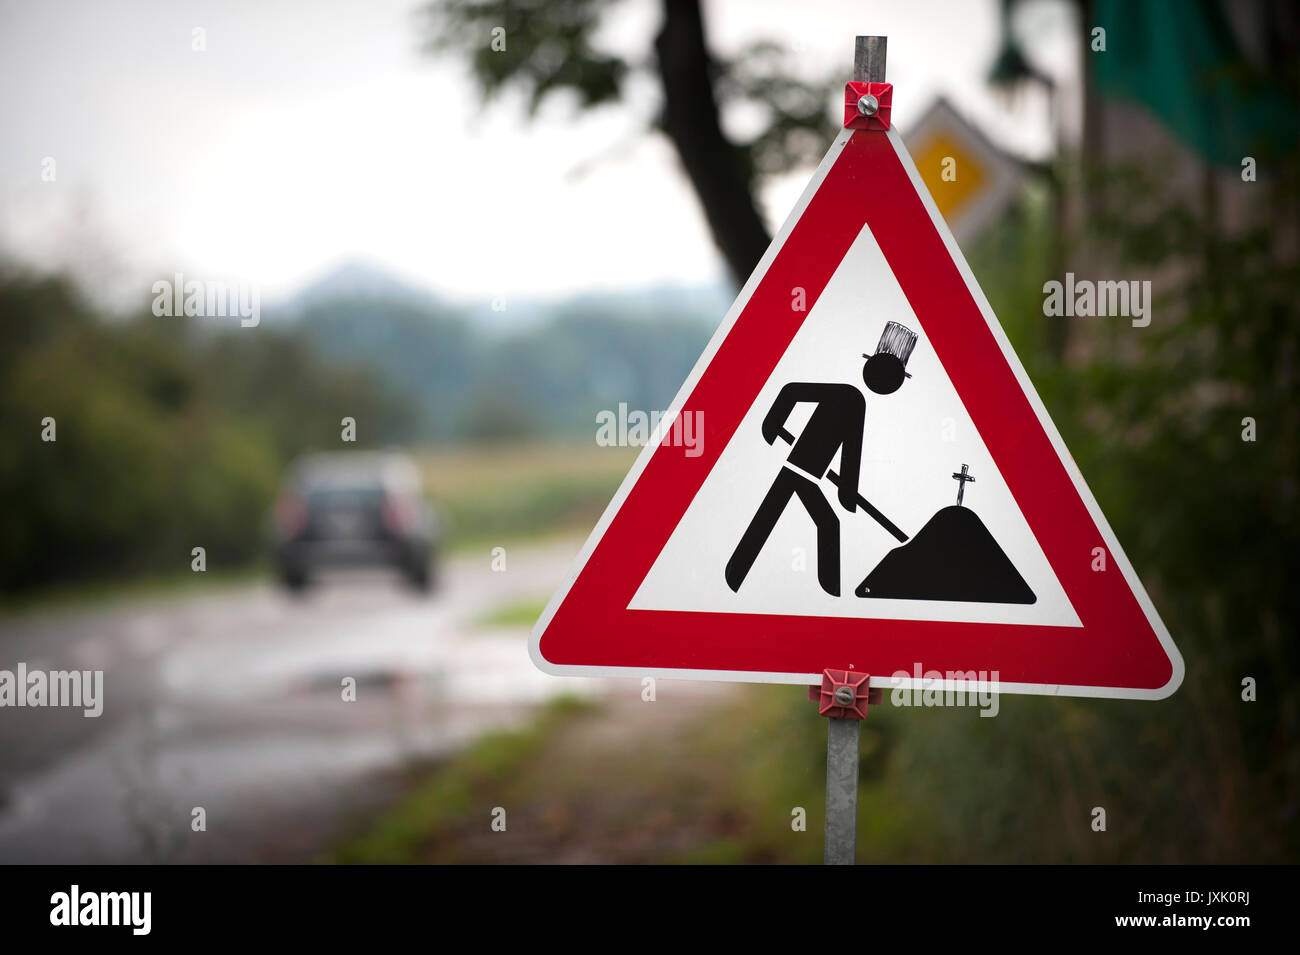 Funny Road Signs - Stock Image